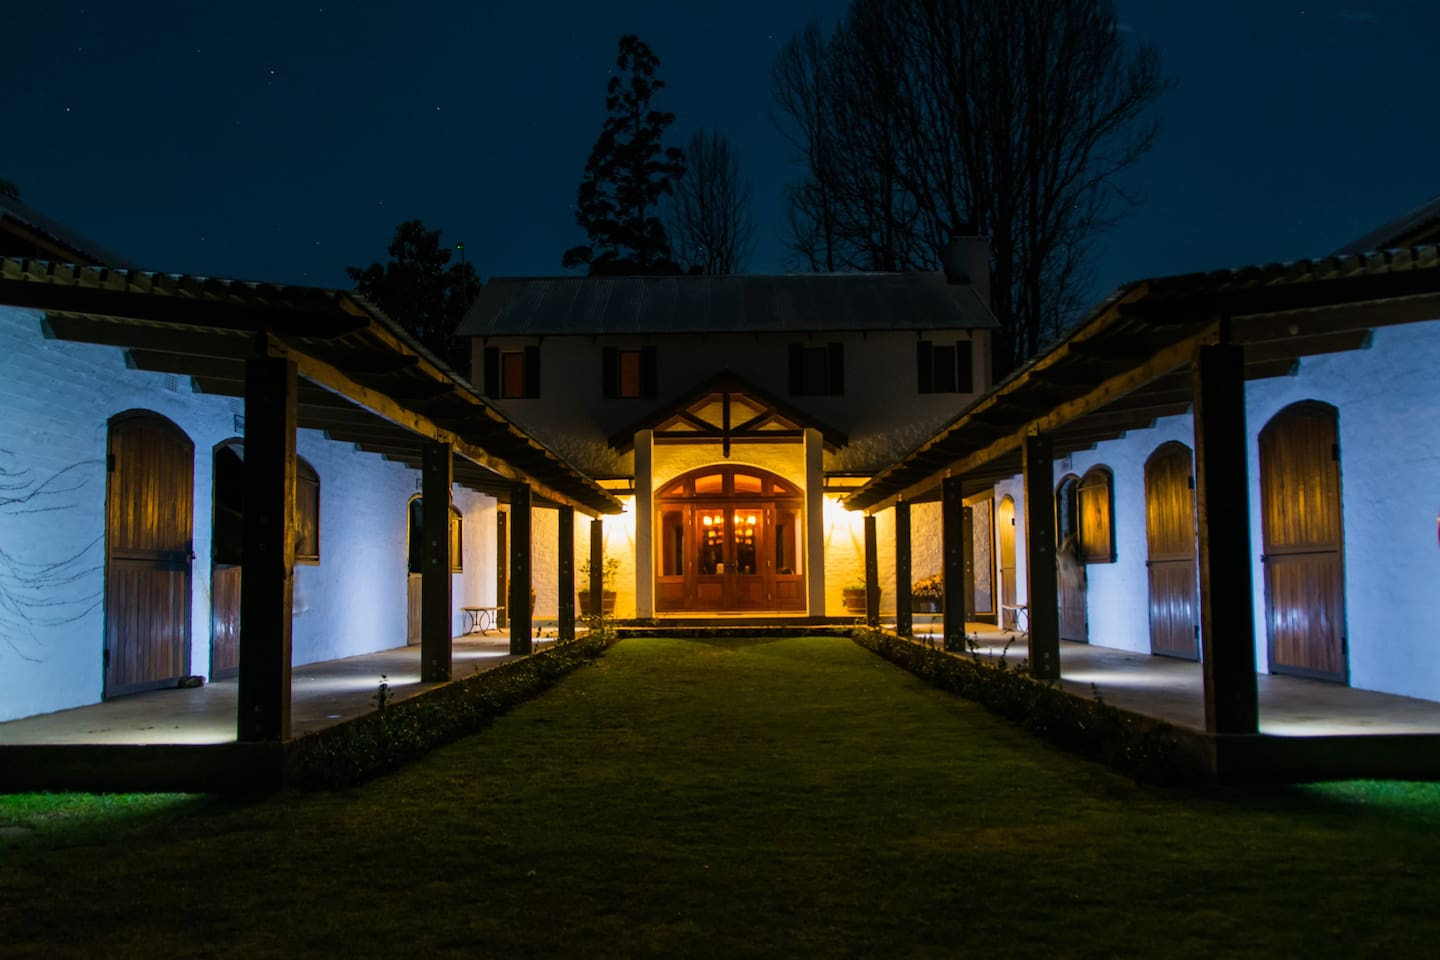 The Stables courtyard at night